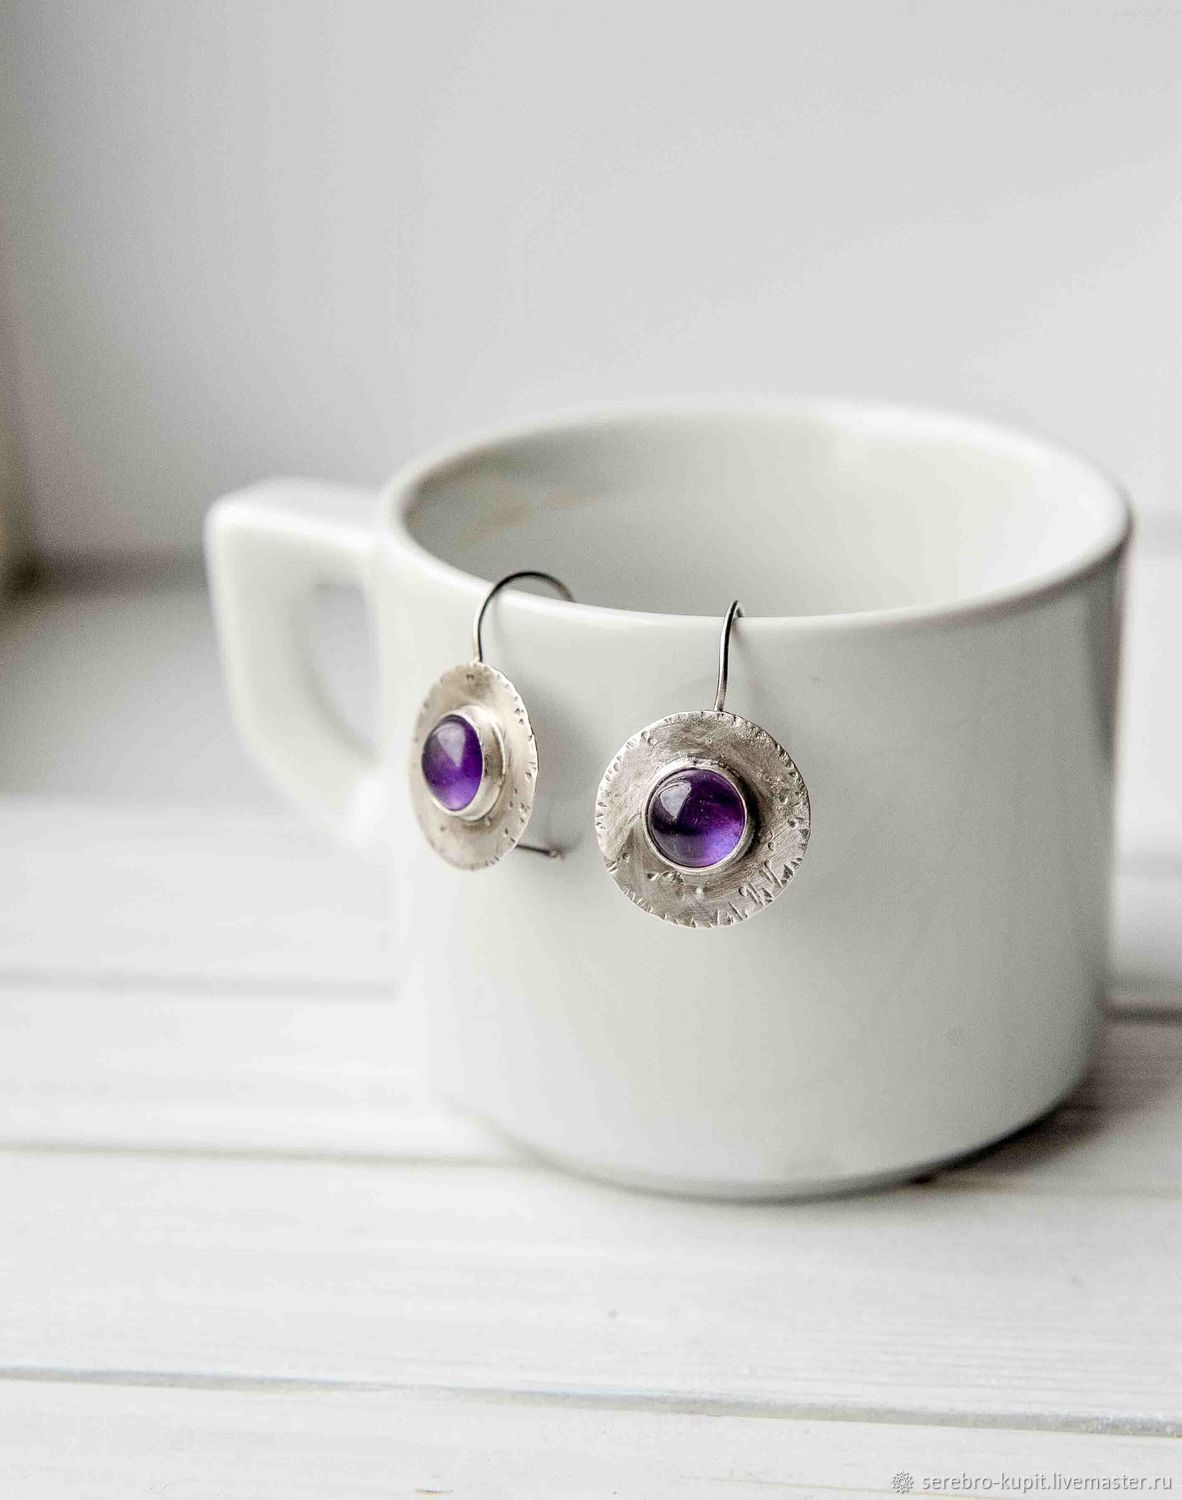 Silver earrings with amethyst sterling silver earrings. This is an exclusive silver jewelry handmade